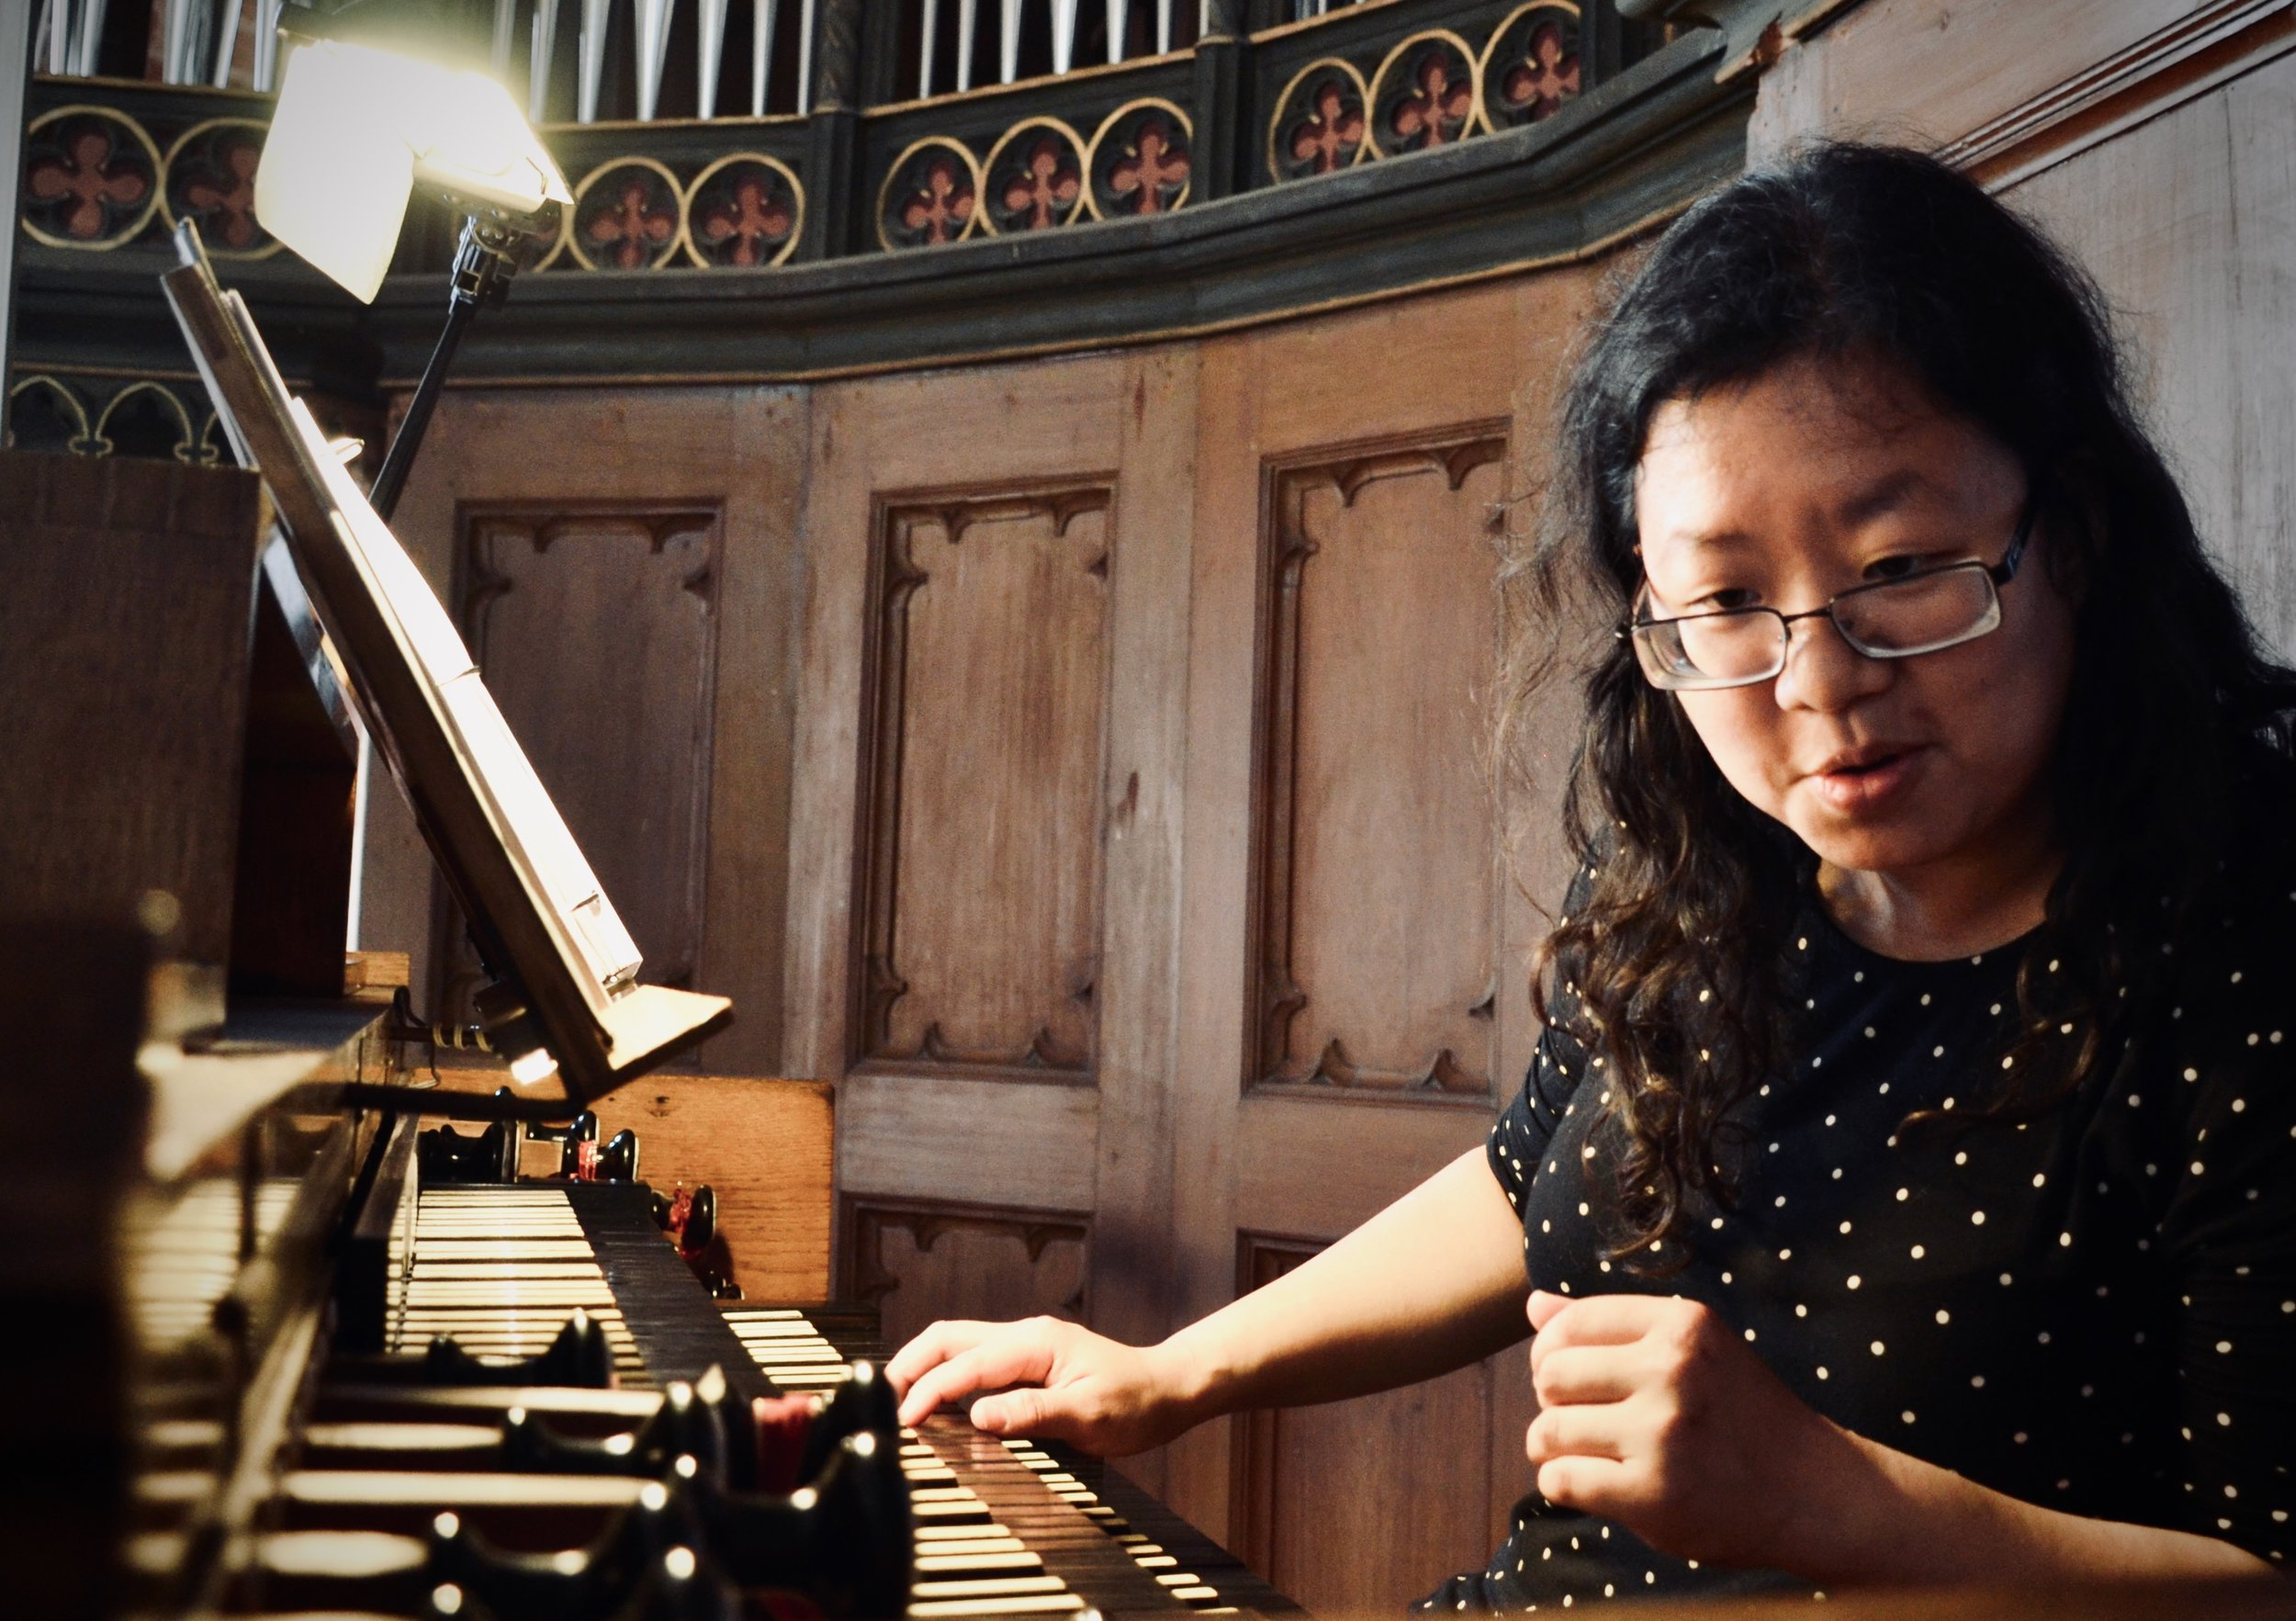 Jennifer Hsiao plays the 1867 Lütkemüller Organ, St. Petri-Kirche, Seehausen.